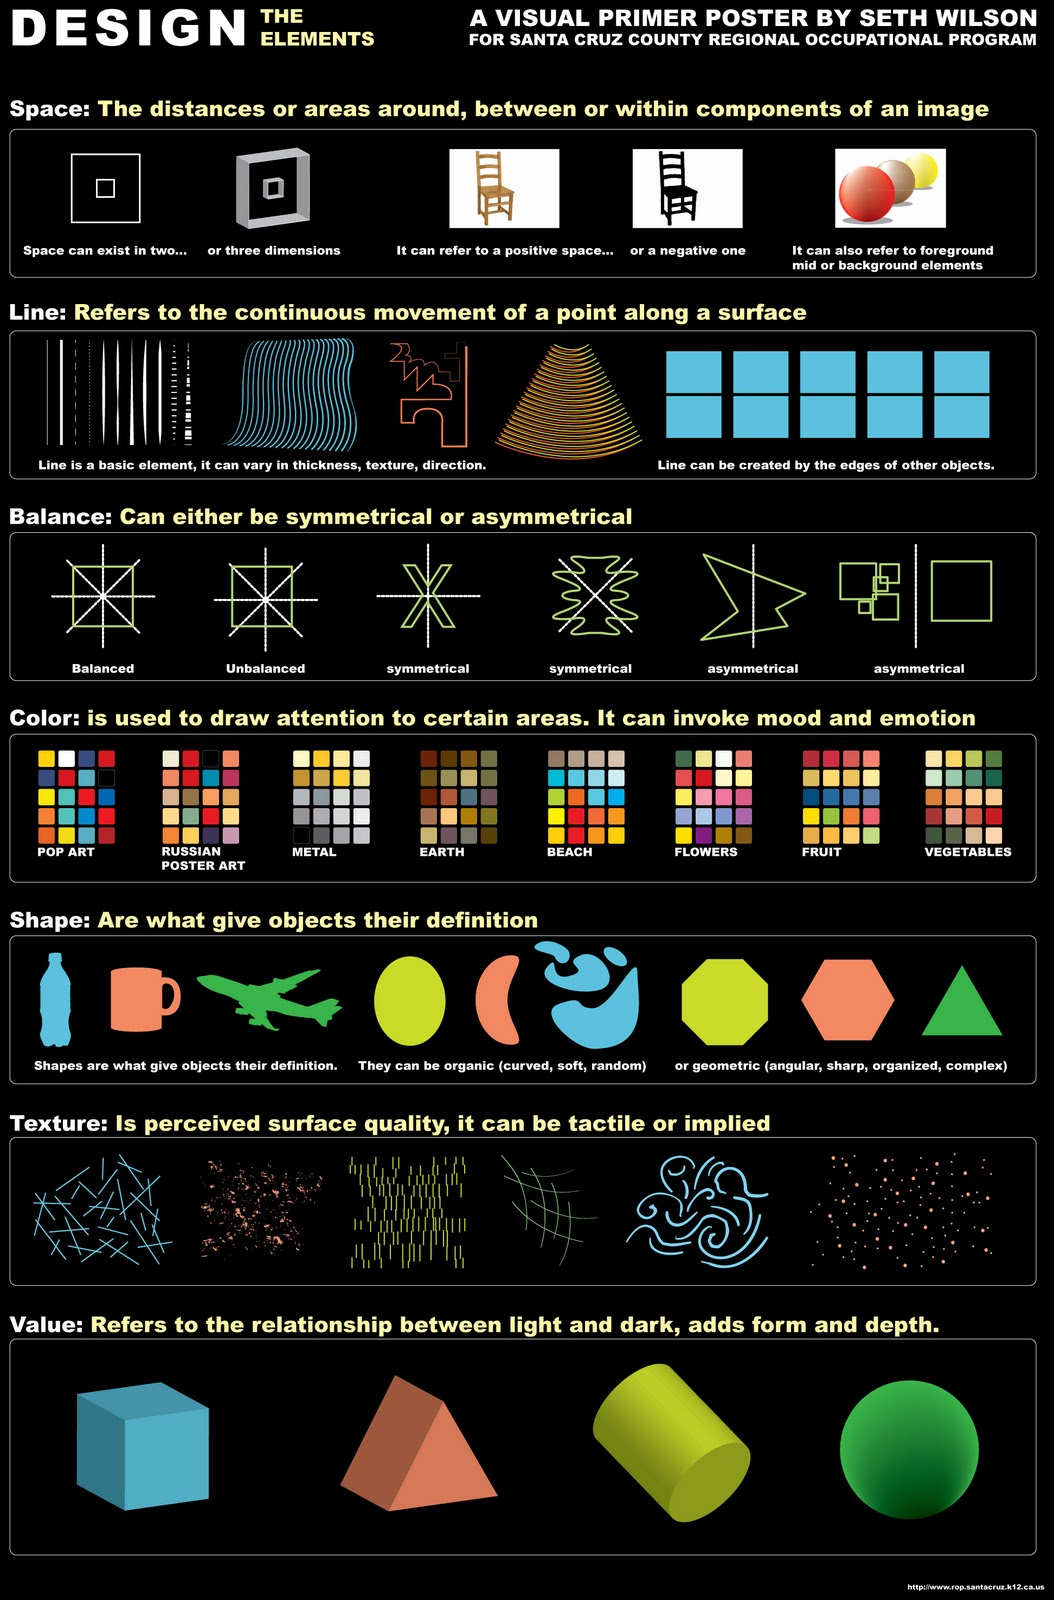 What Are The Elements Of Design : Inkfumes poster designs color design typography theory